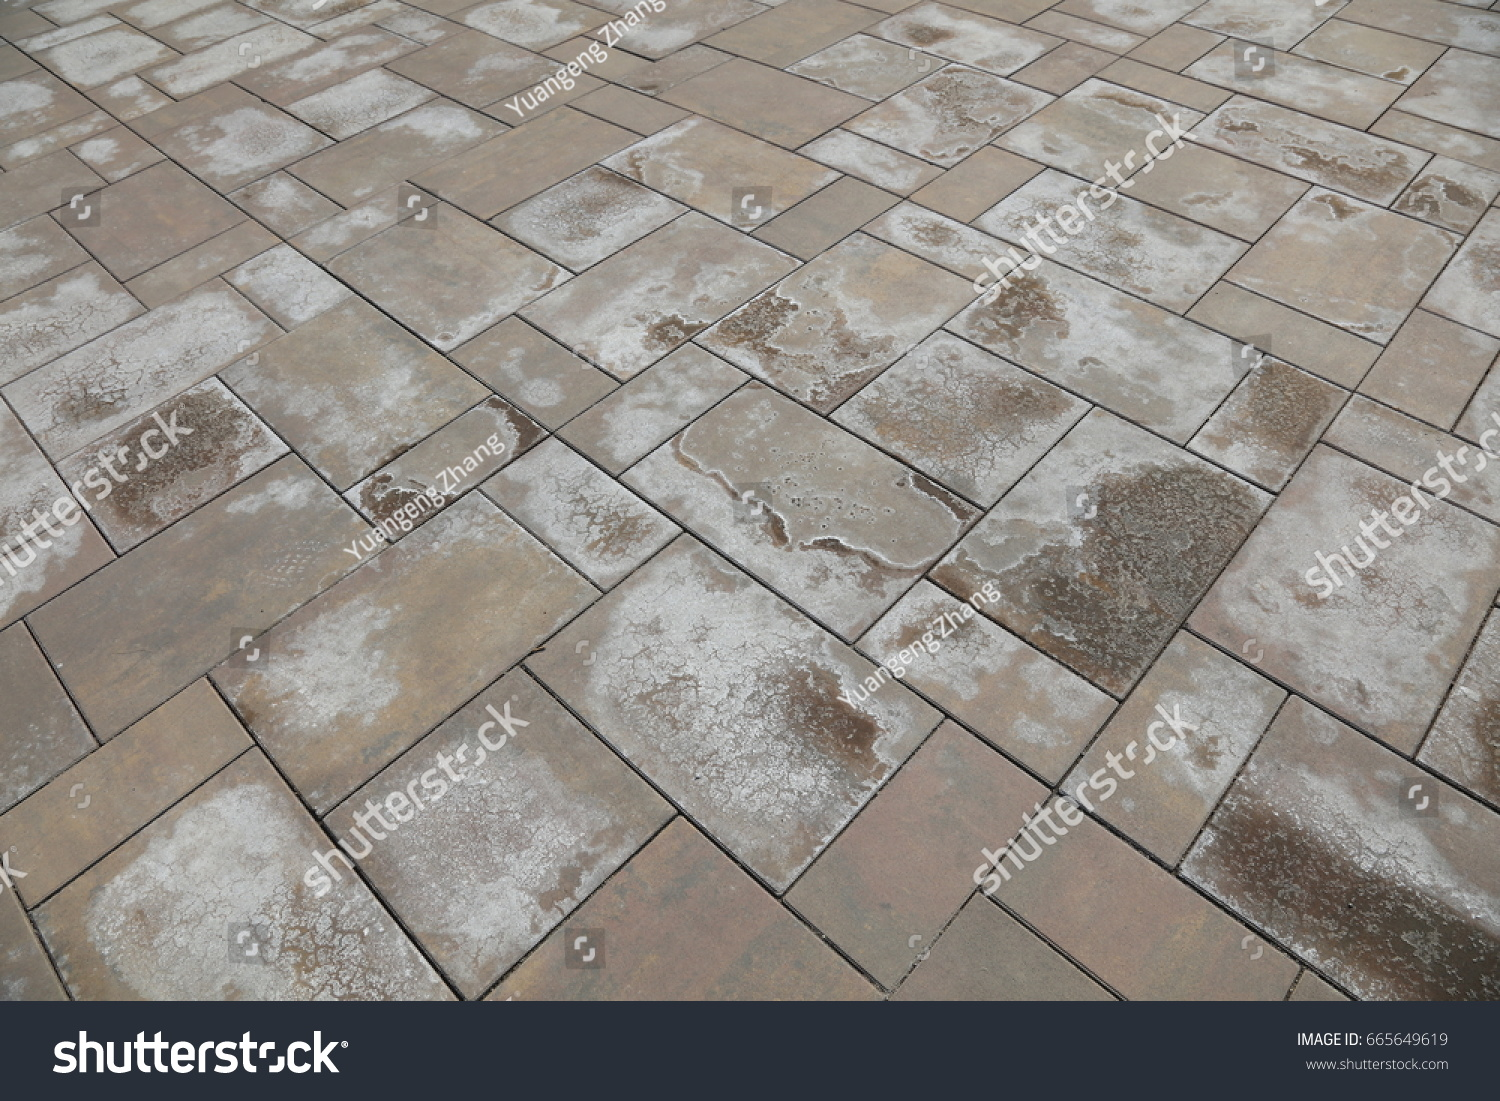 Alkali stain on cement floor tile stock photo 665649619 shutterstock alkali stain on the cement floor tile dailygadgetfo Gallery